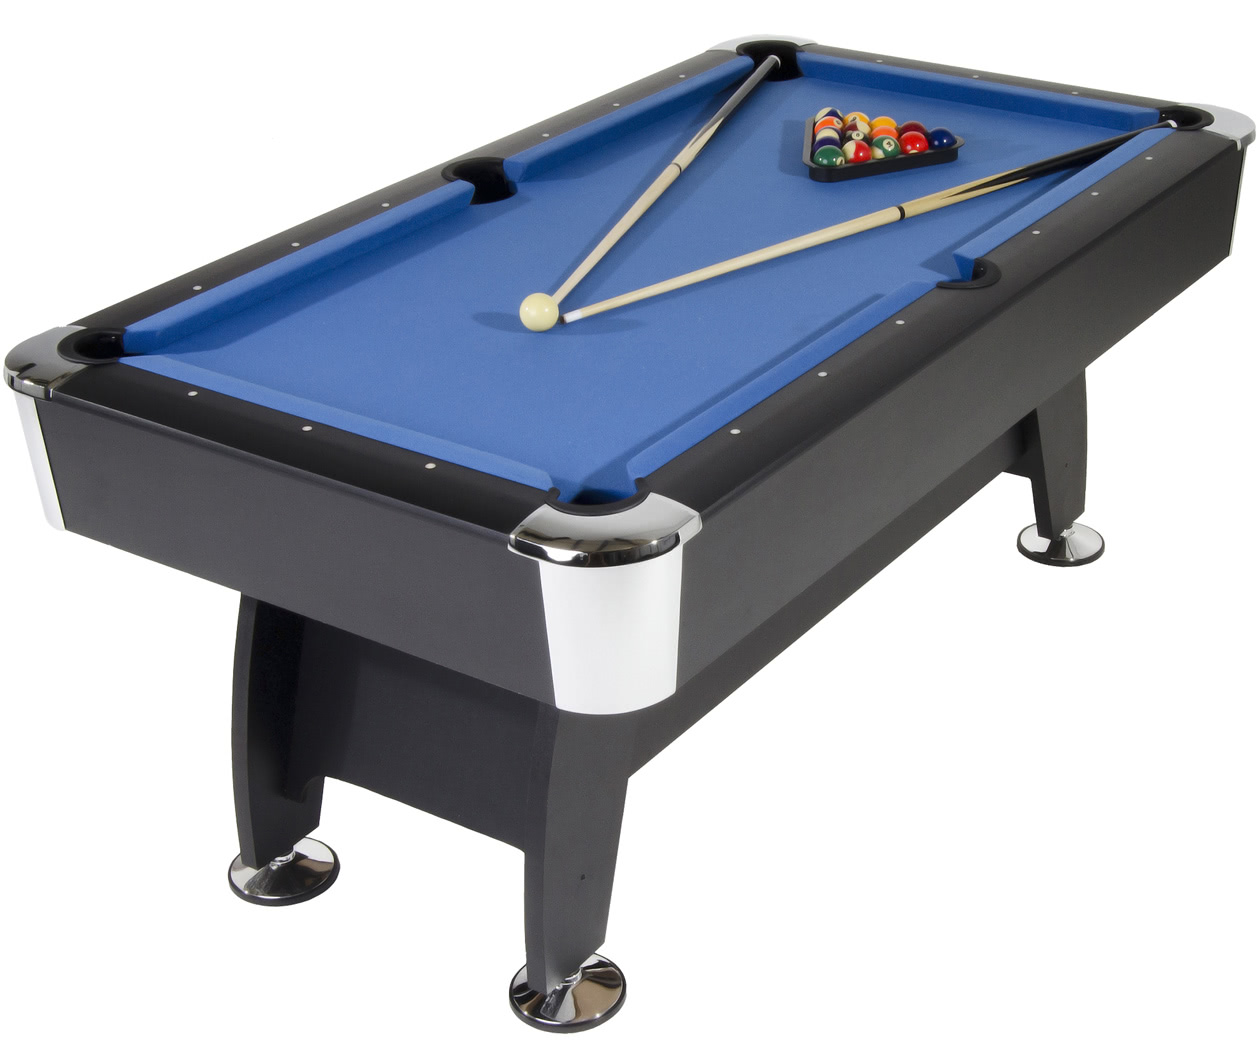 Strikeworth pro american deluxe 6ft pool table liberty games for 12 foot snooker table for sale